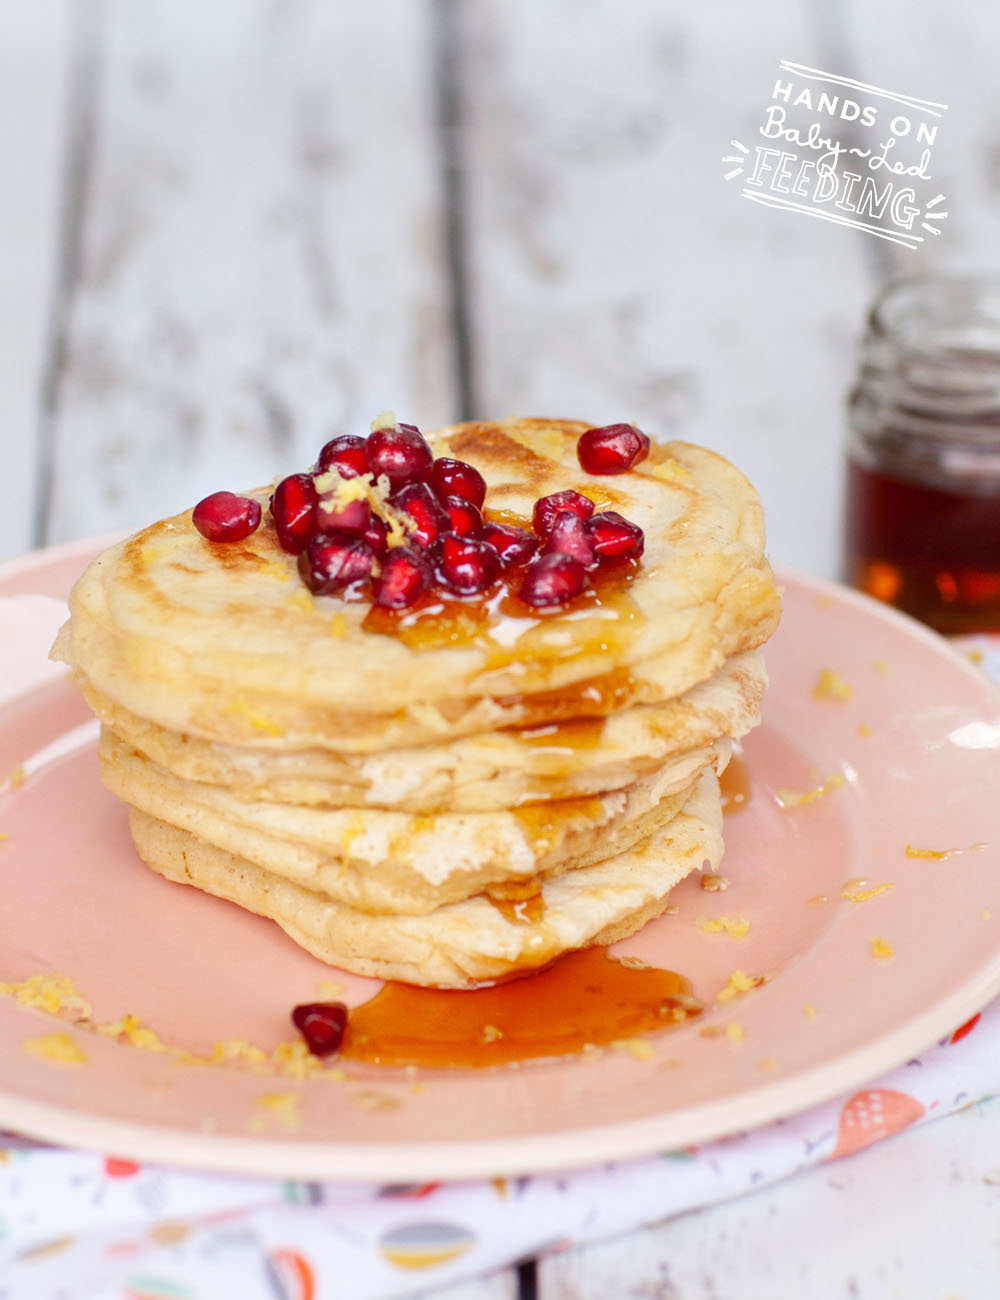 Baby Friendly Lemon and Maple Syrup Pancakes Recipe Images